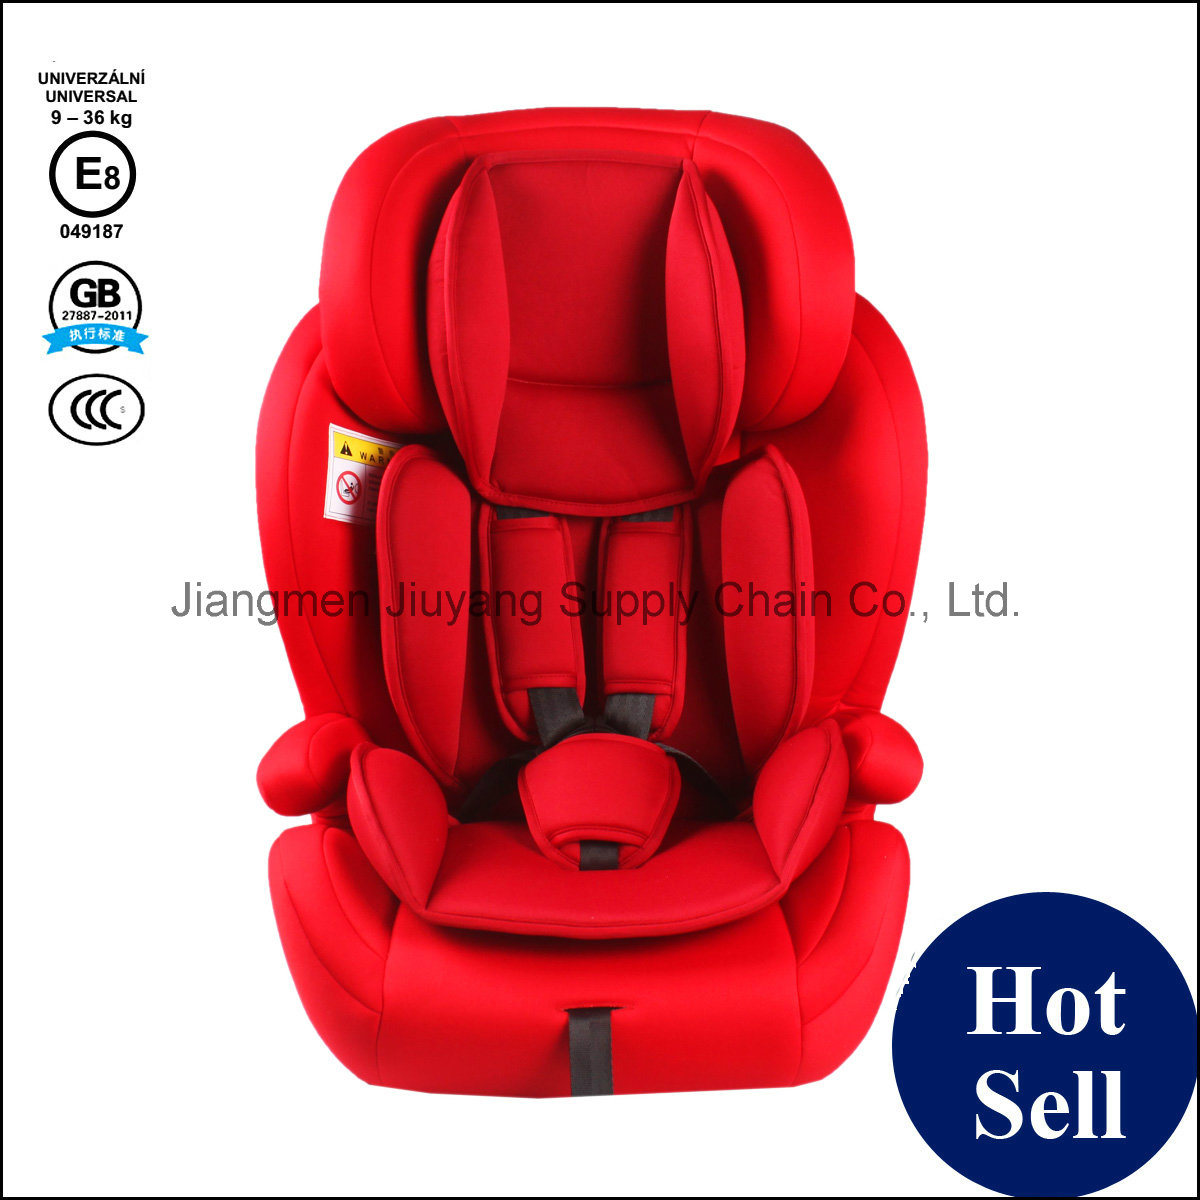 HDPE Frame Baby Safety Car Seat with ECE8 Certification - Free Sample